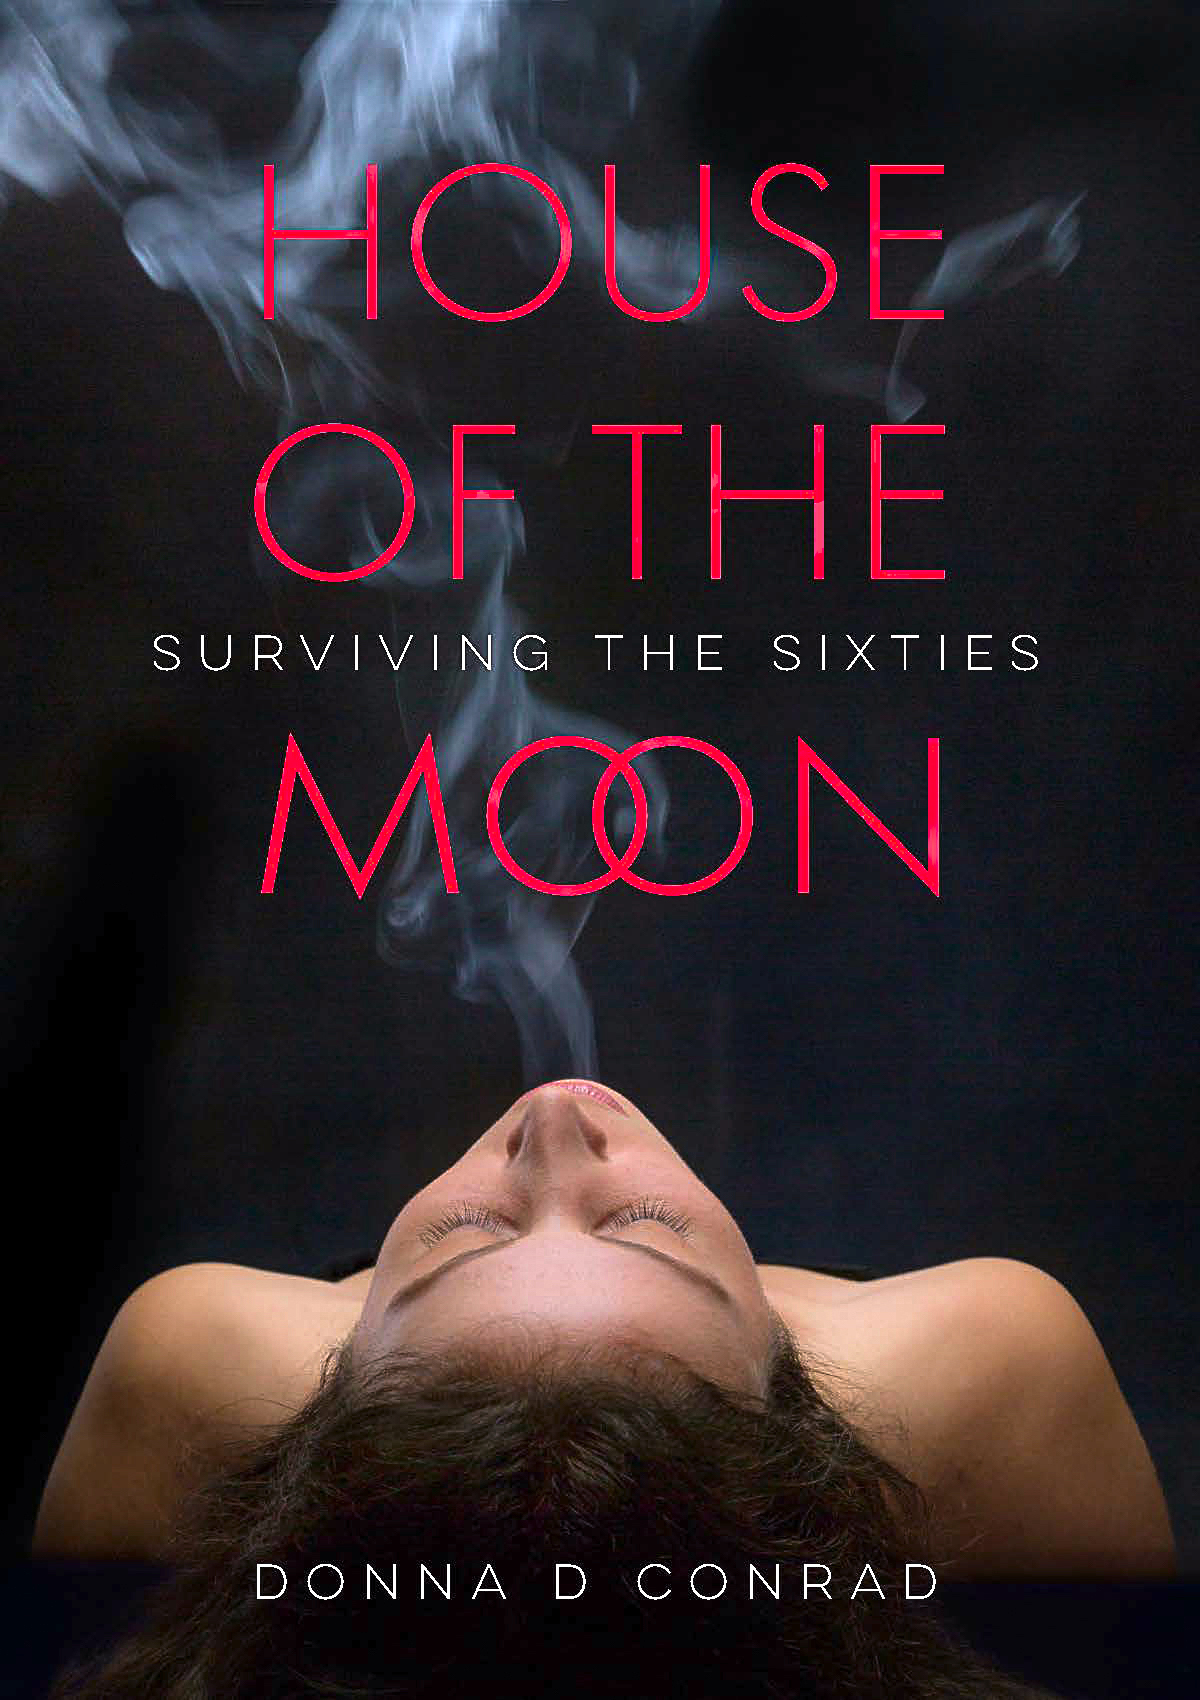 house of the moon: surviving the sixties